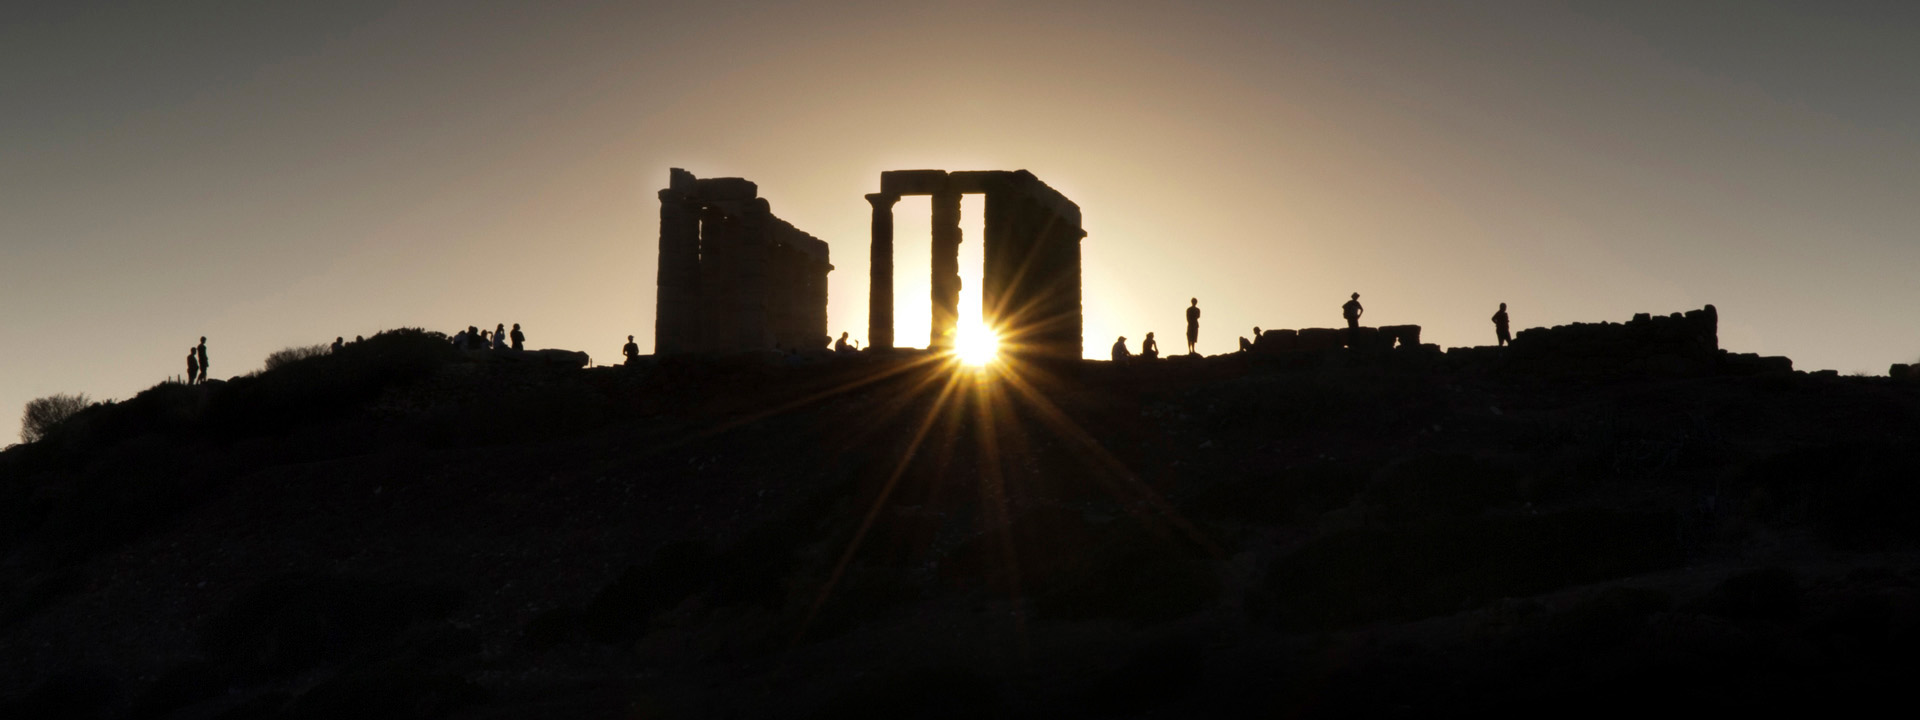 Accueil_Slider_Grece-Sounion